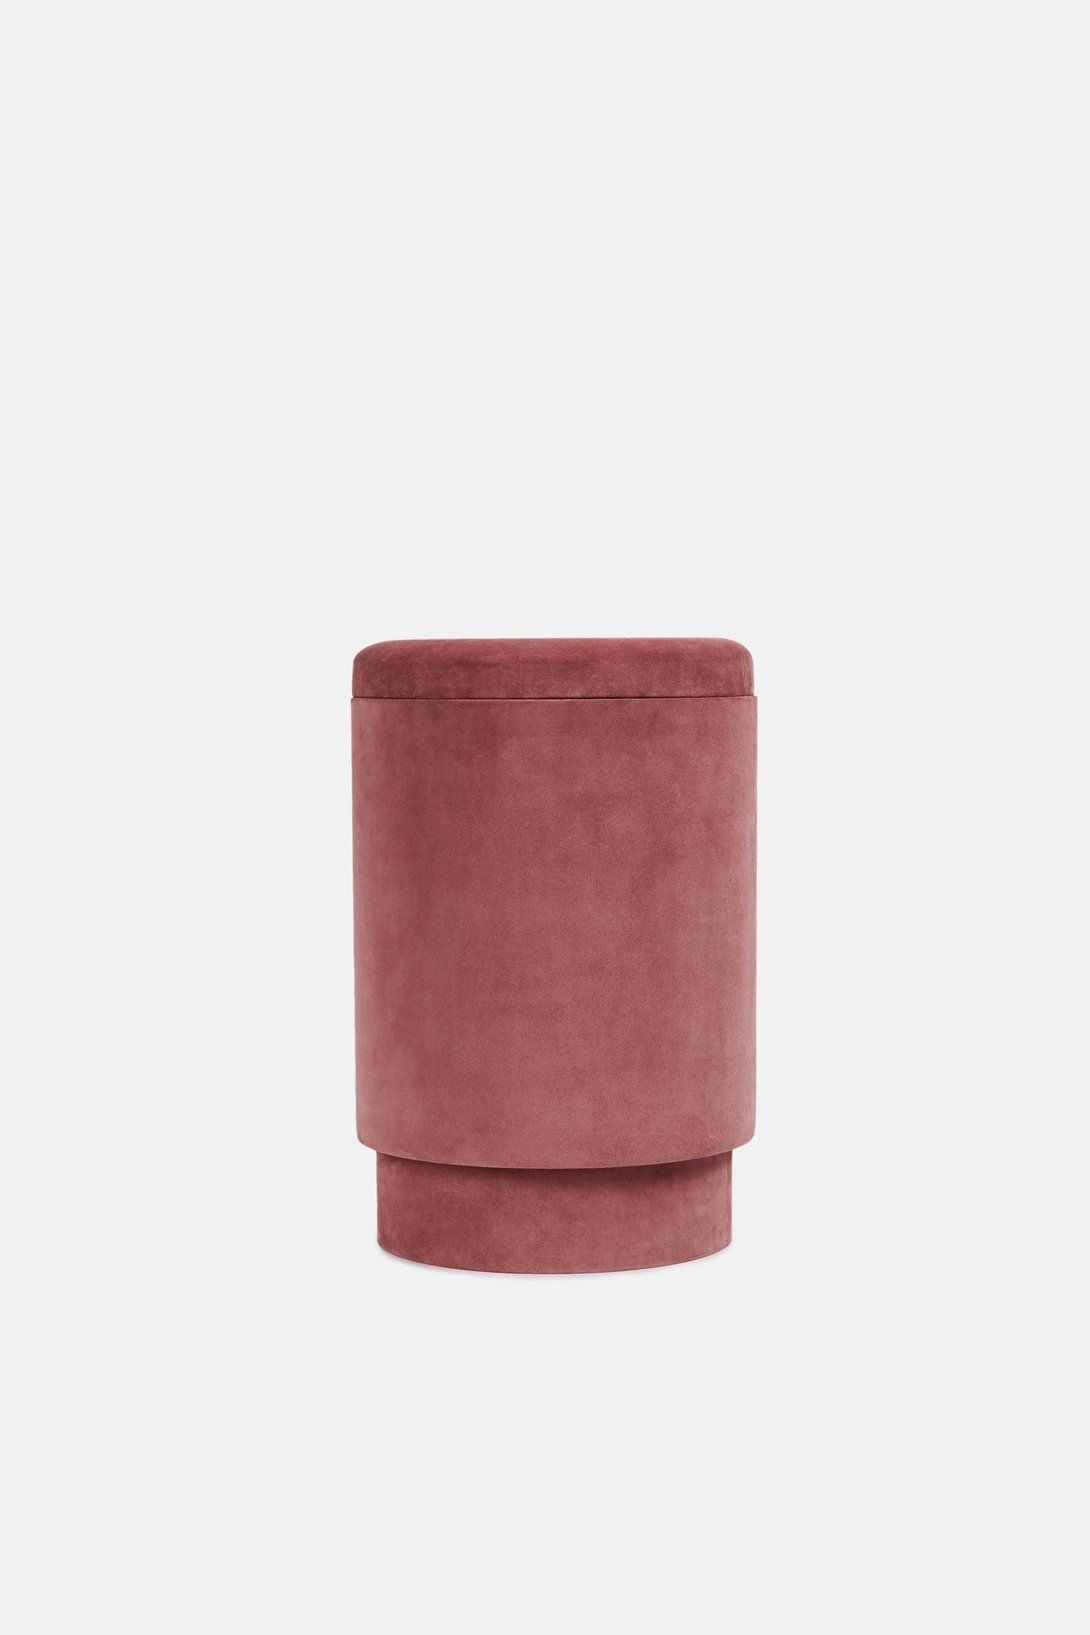 Seats And Sofas Genk Suede Storage Stool Vieux Rose Apartment Pinterest Storage